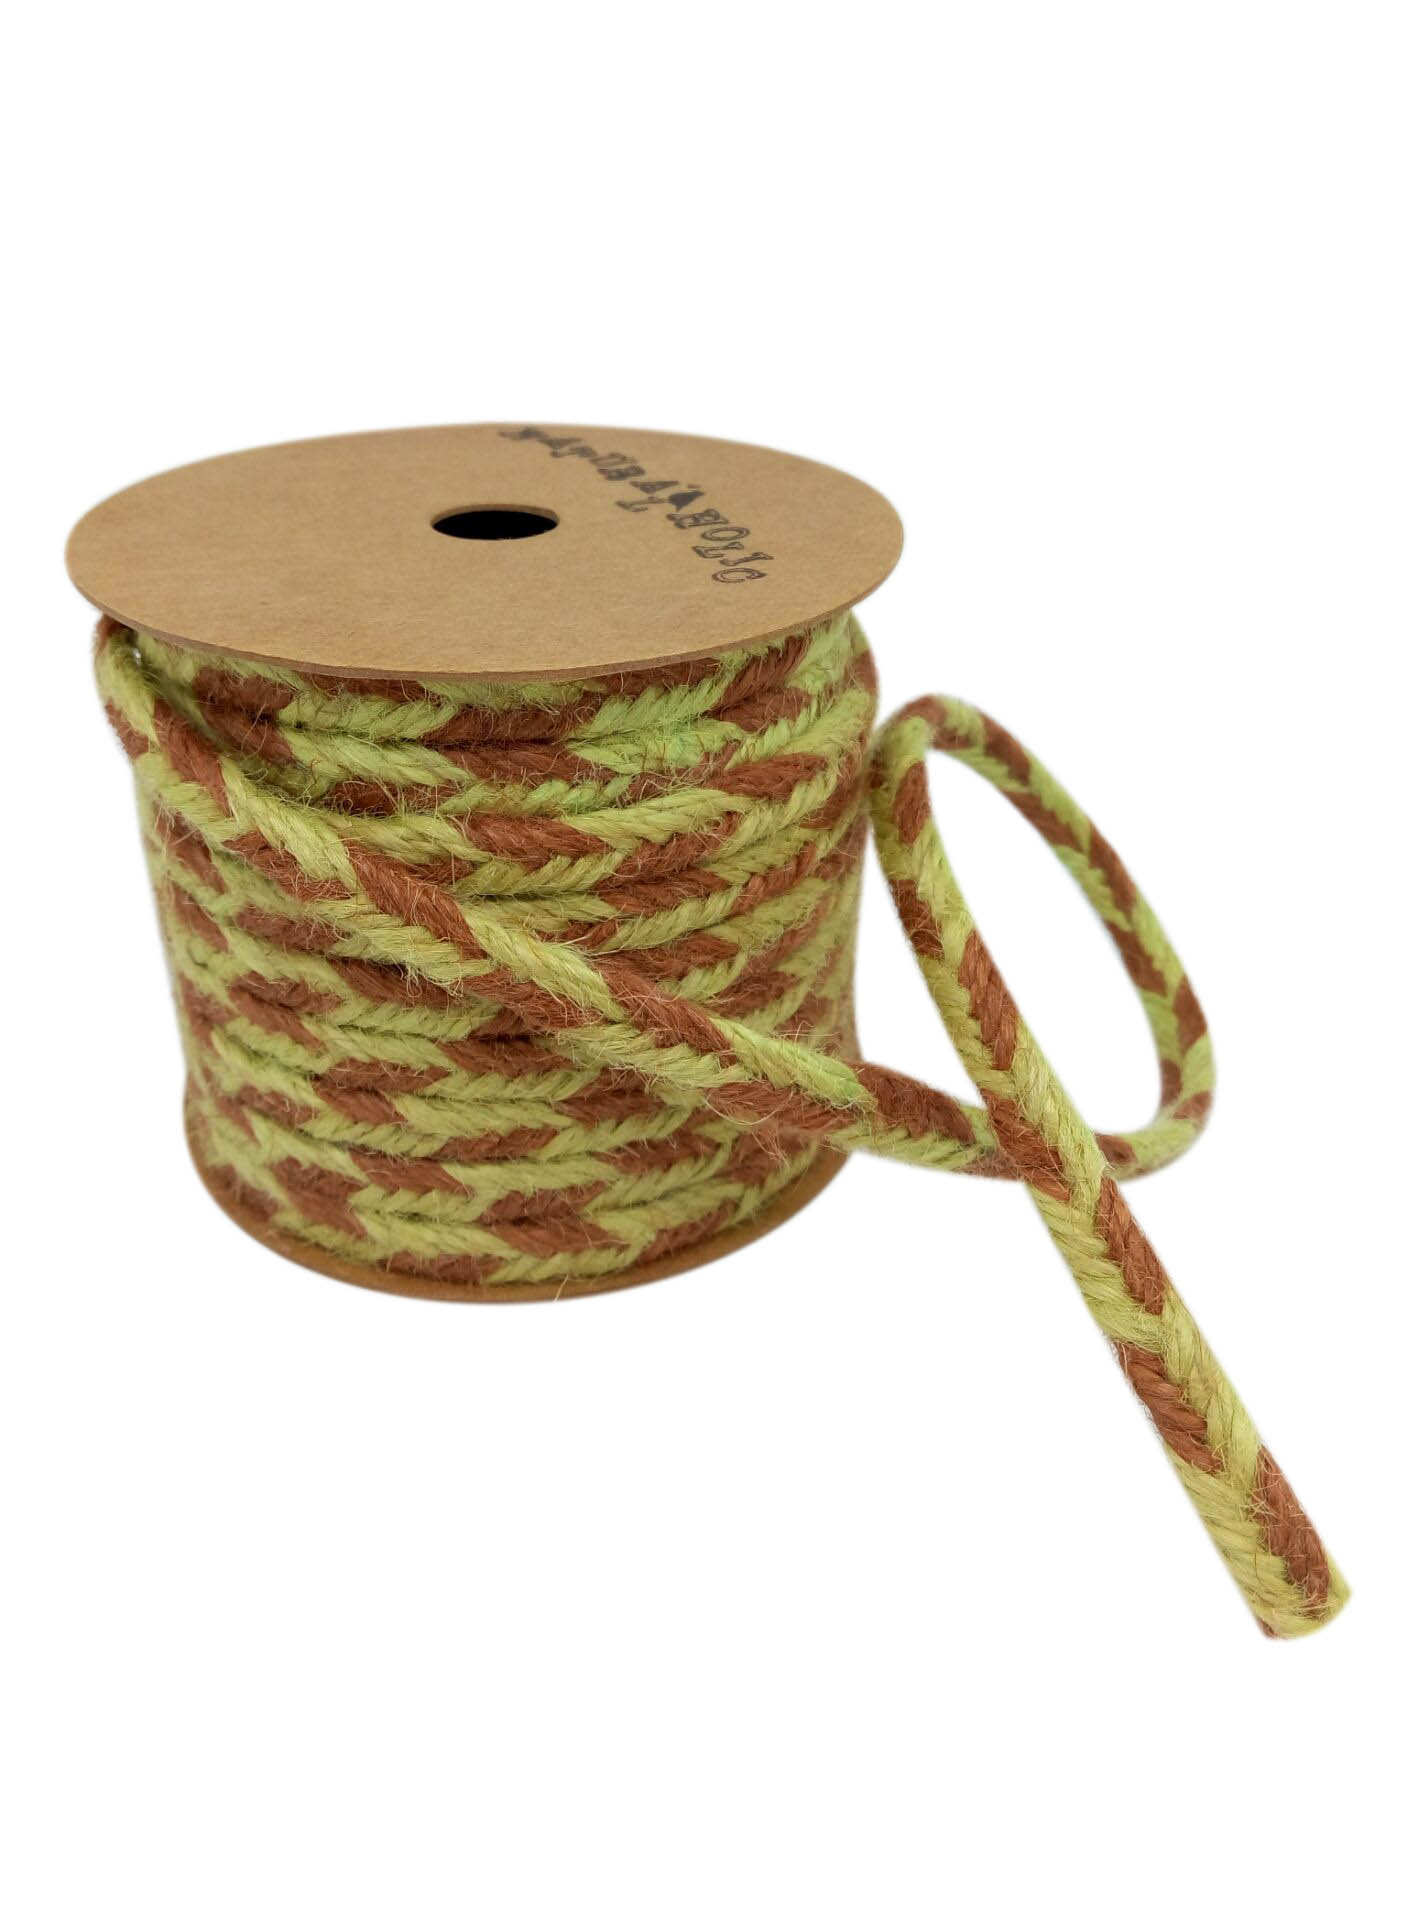 1Roll to SELL! 0.8CM Jute braid rope Garden deco, Party supplies